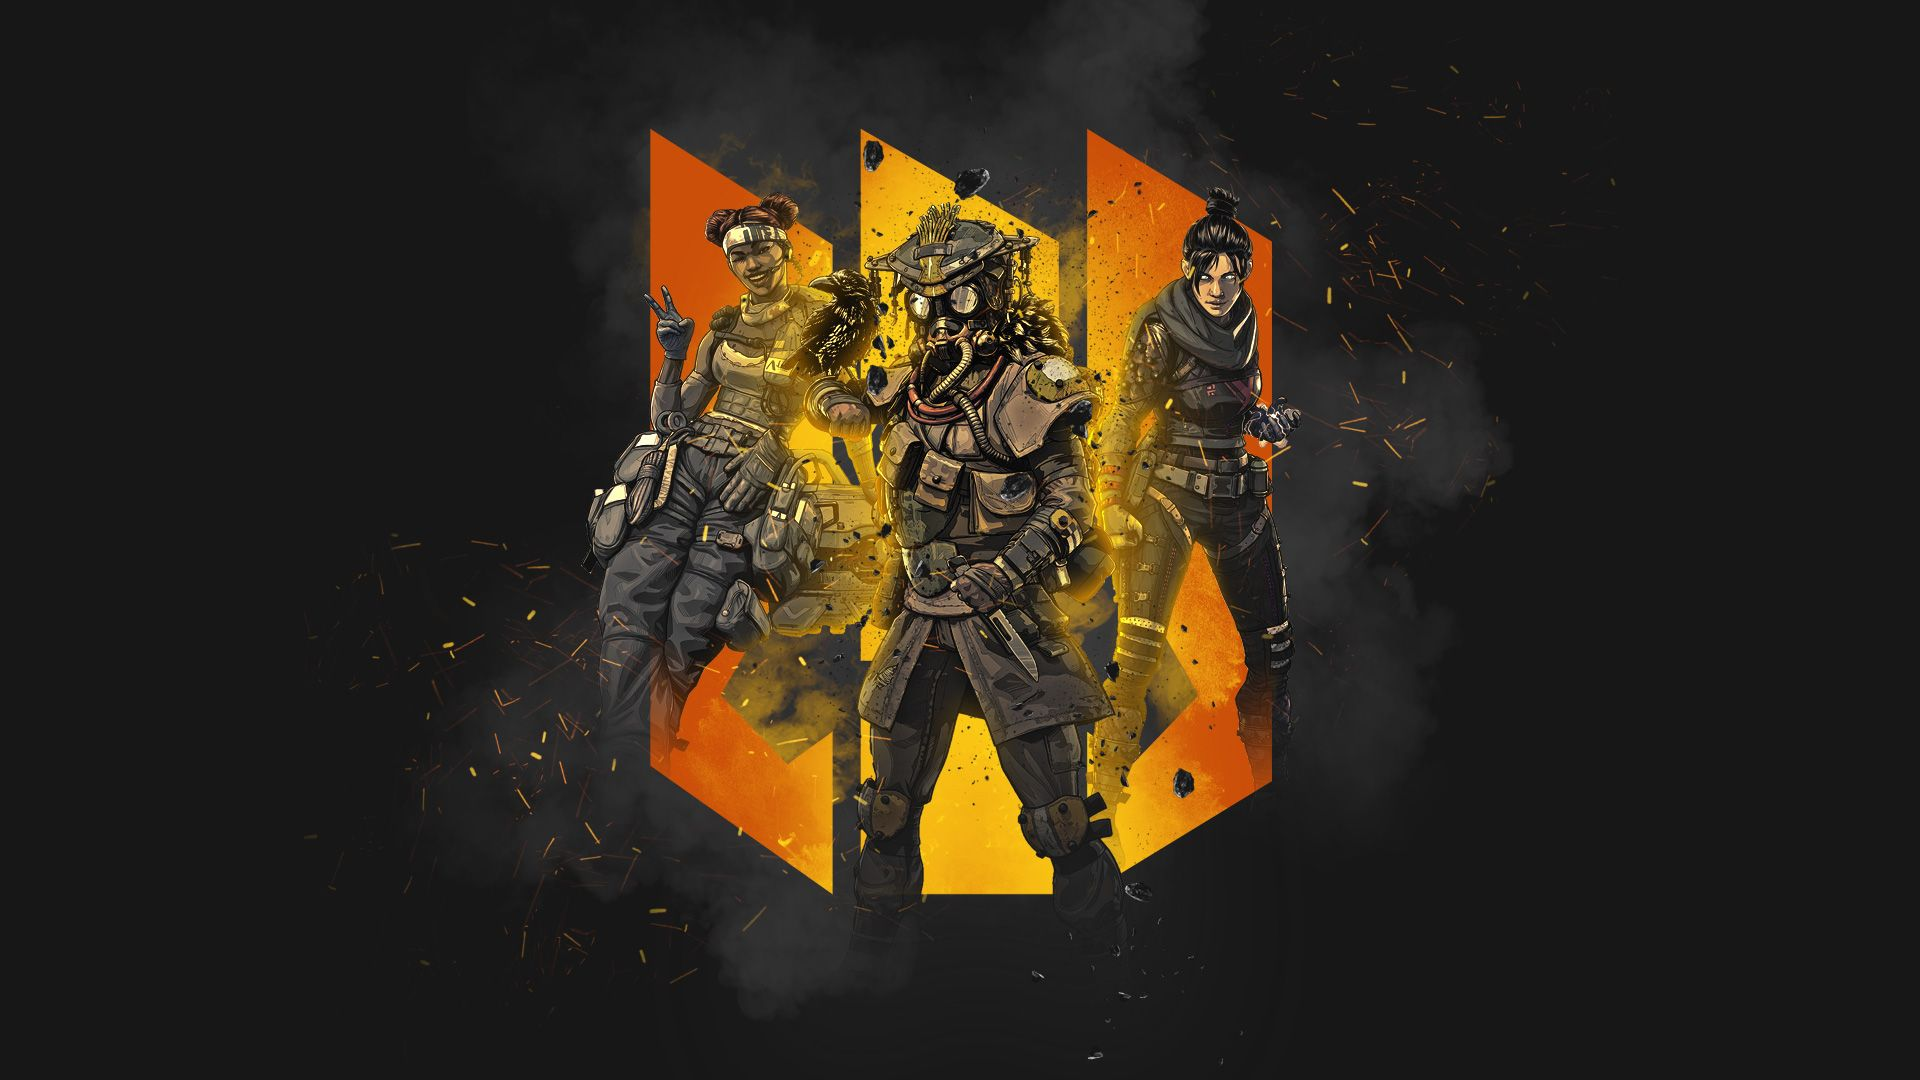 Pin On Apex Legends 4k Wallpapers